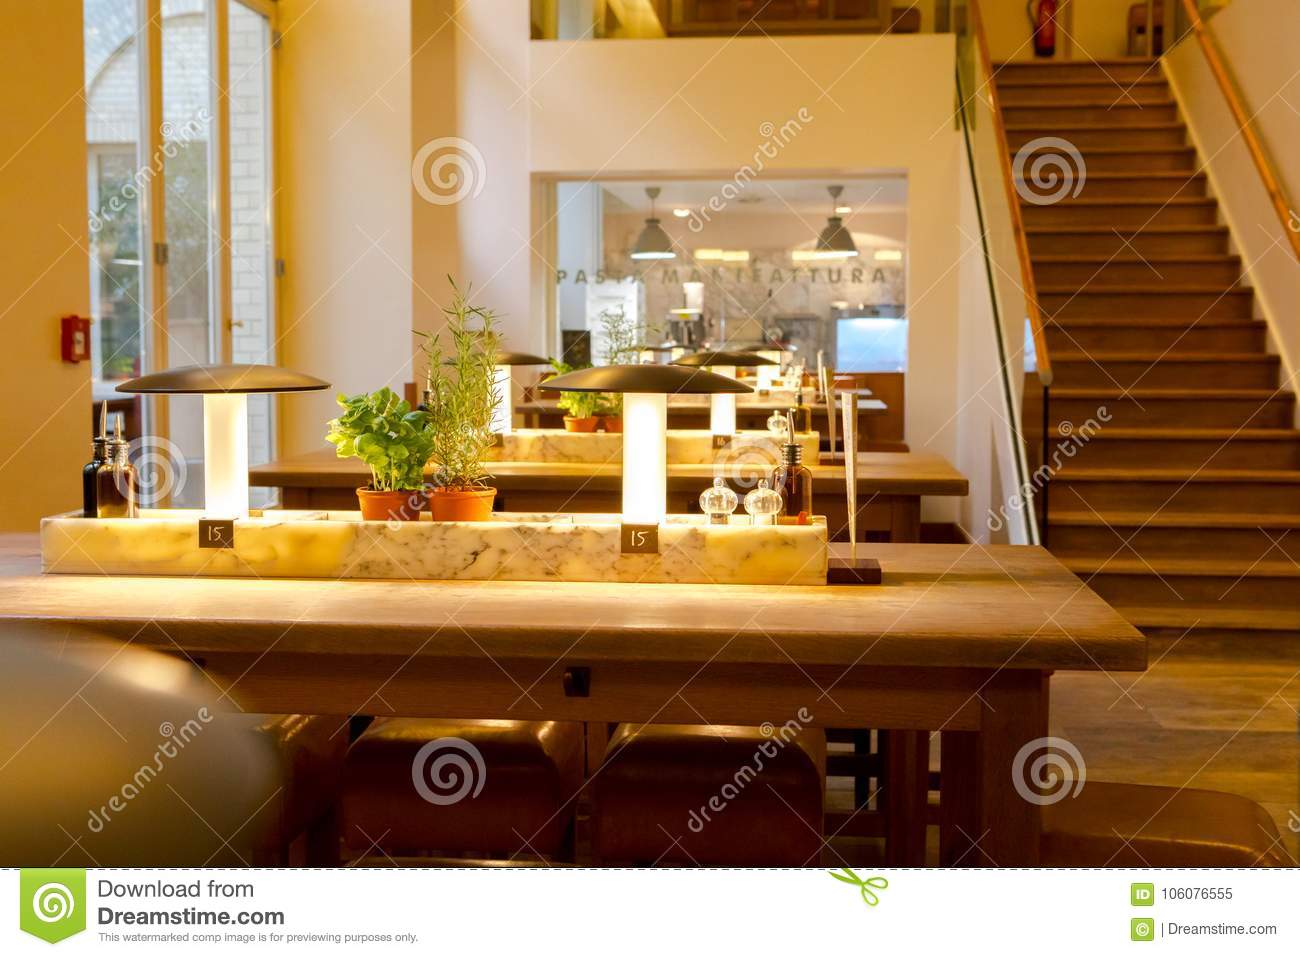 Berlin Interior Design Germany Berlin Italian Restaurant Buffet Restaurant Interior